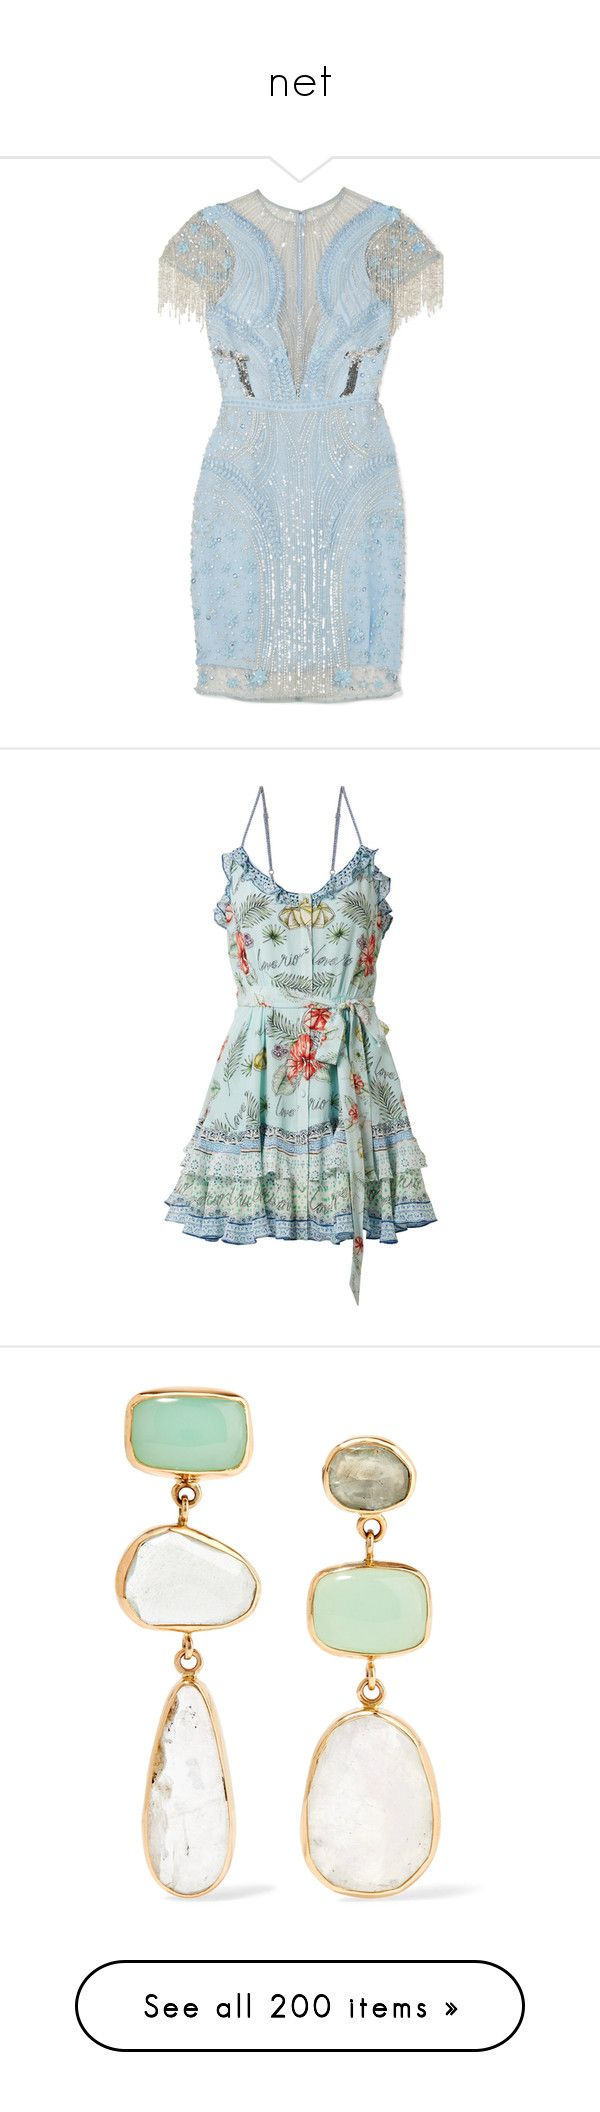 """""""net"""" by alyssa23 ❤ liked on Polyvore featuring dresses, short sparkly dresses, sparkly cocktail dresses, short sequin dress, sequined dress, blue sequin dress, mint, short green dress, mint dresses and flower dress"""